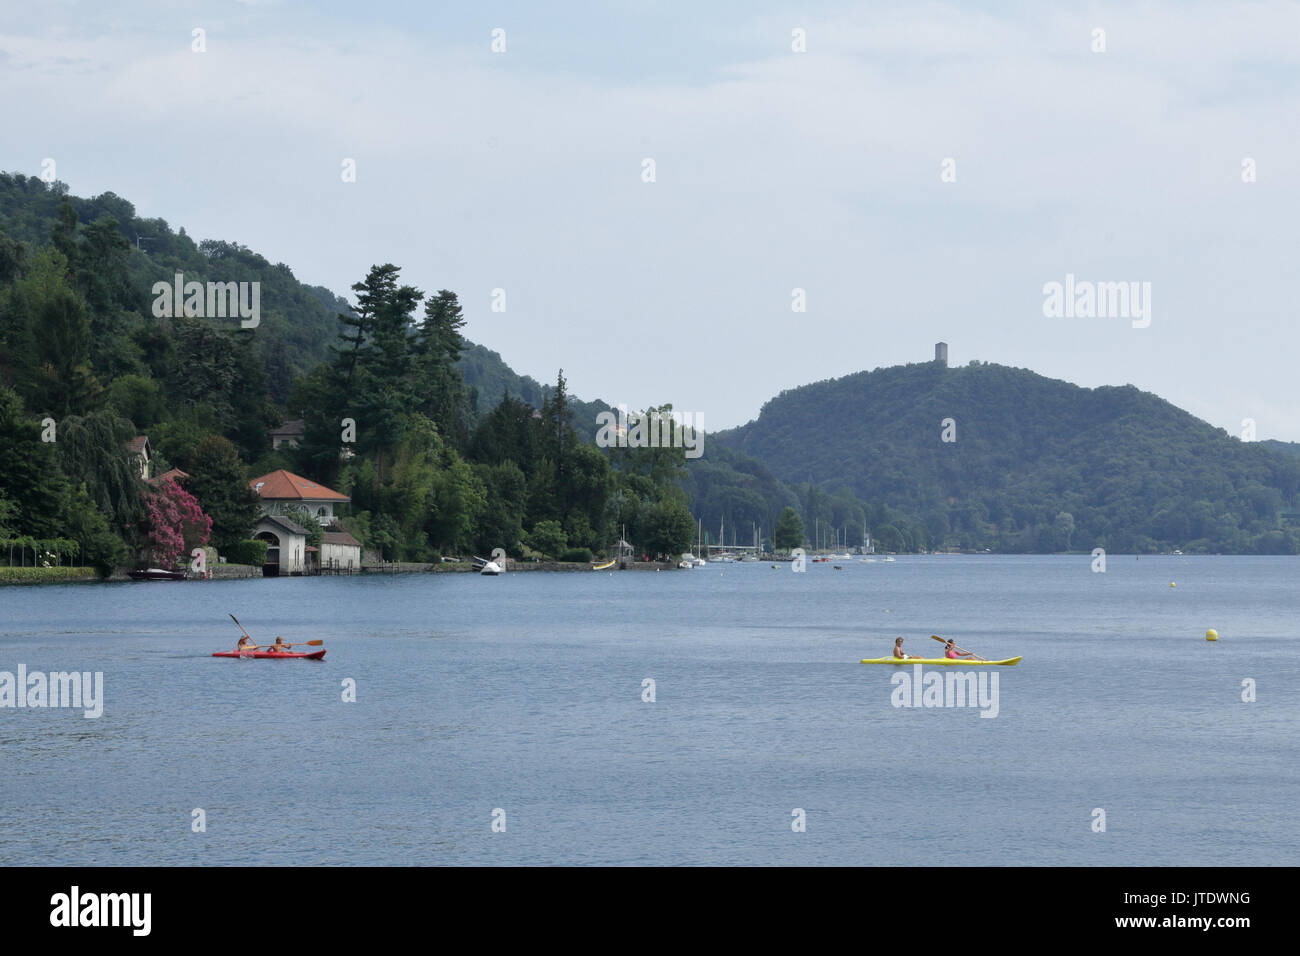 A house with trees next to the lake Orta shore in Novara province, northern Italy, with two pirogues - Stock Image